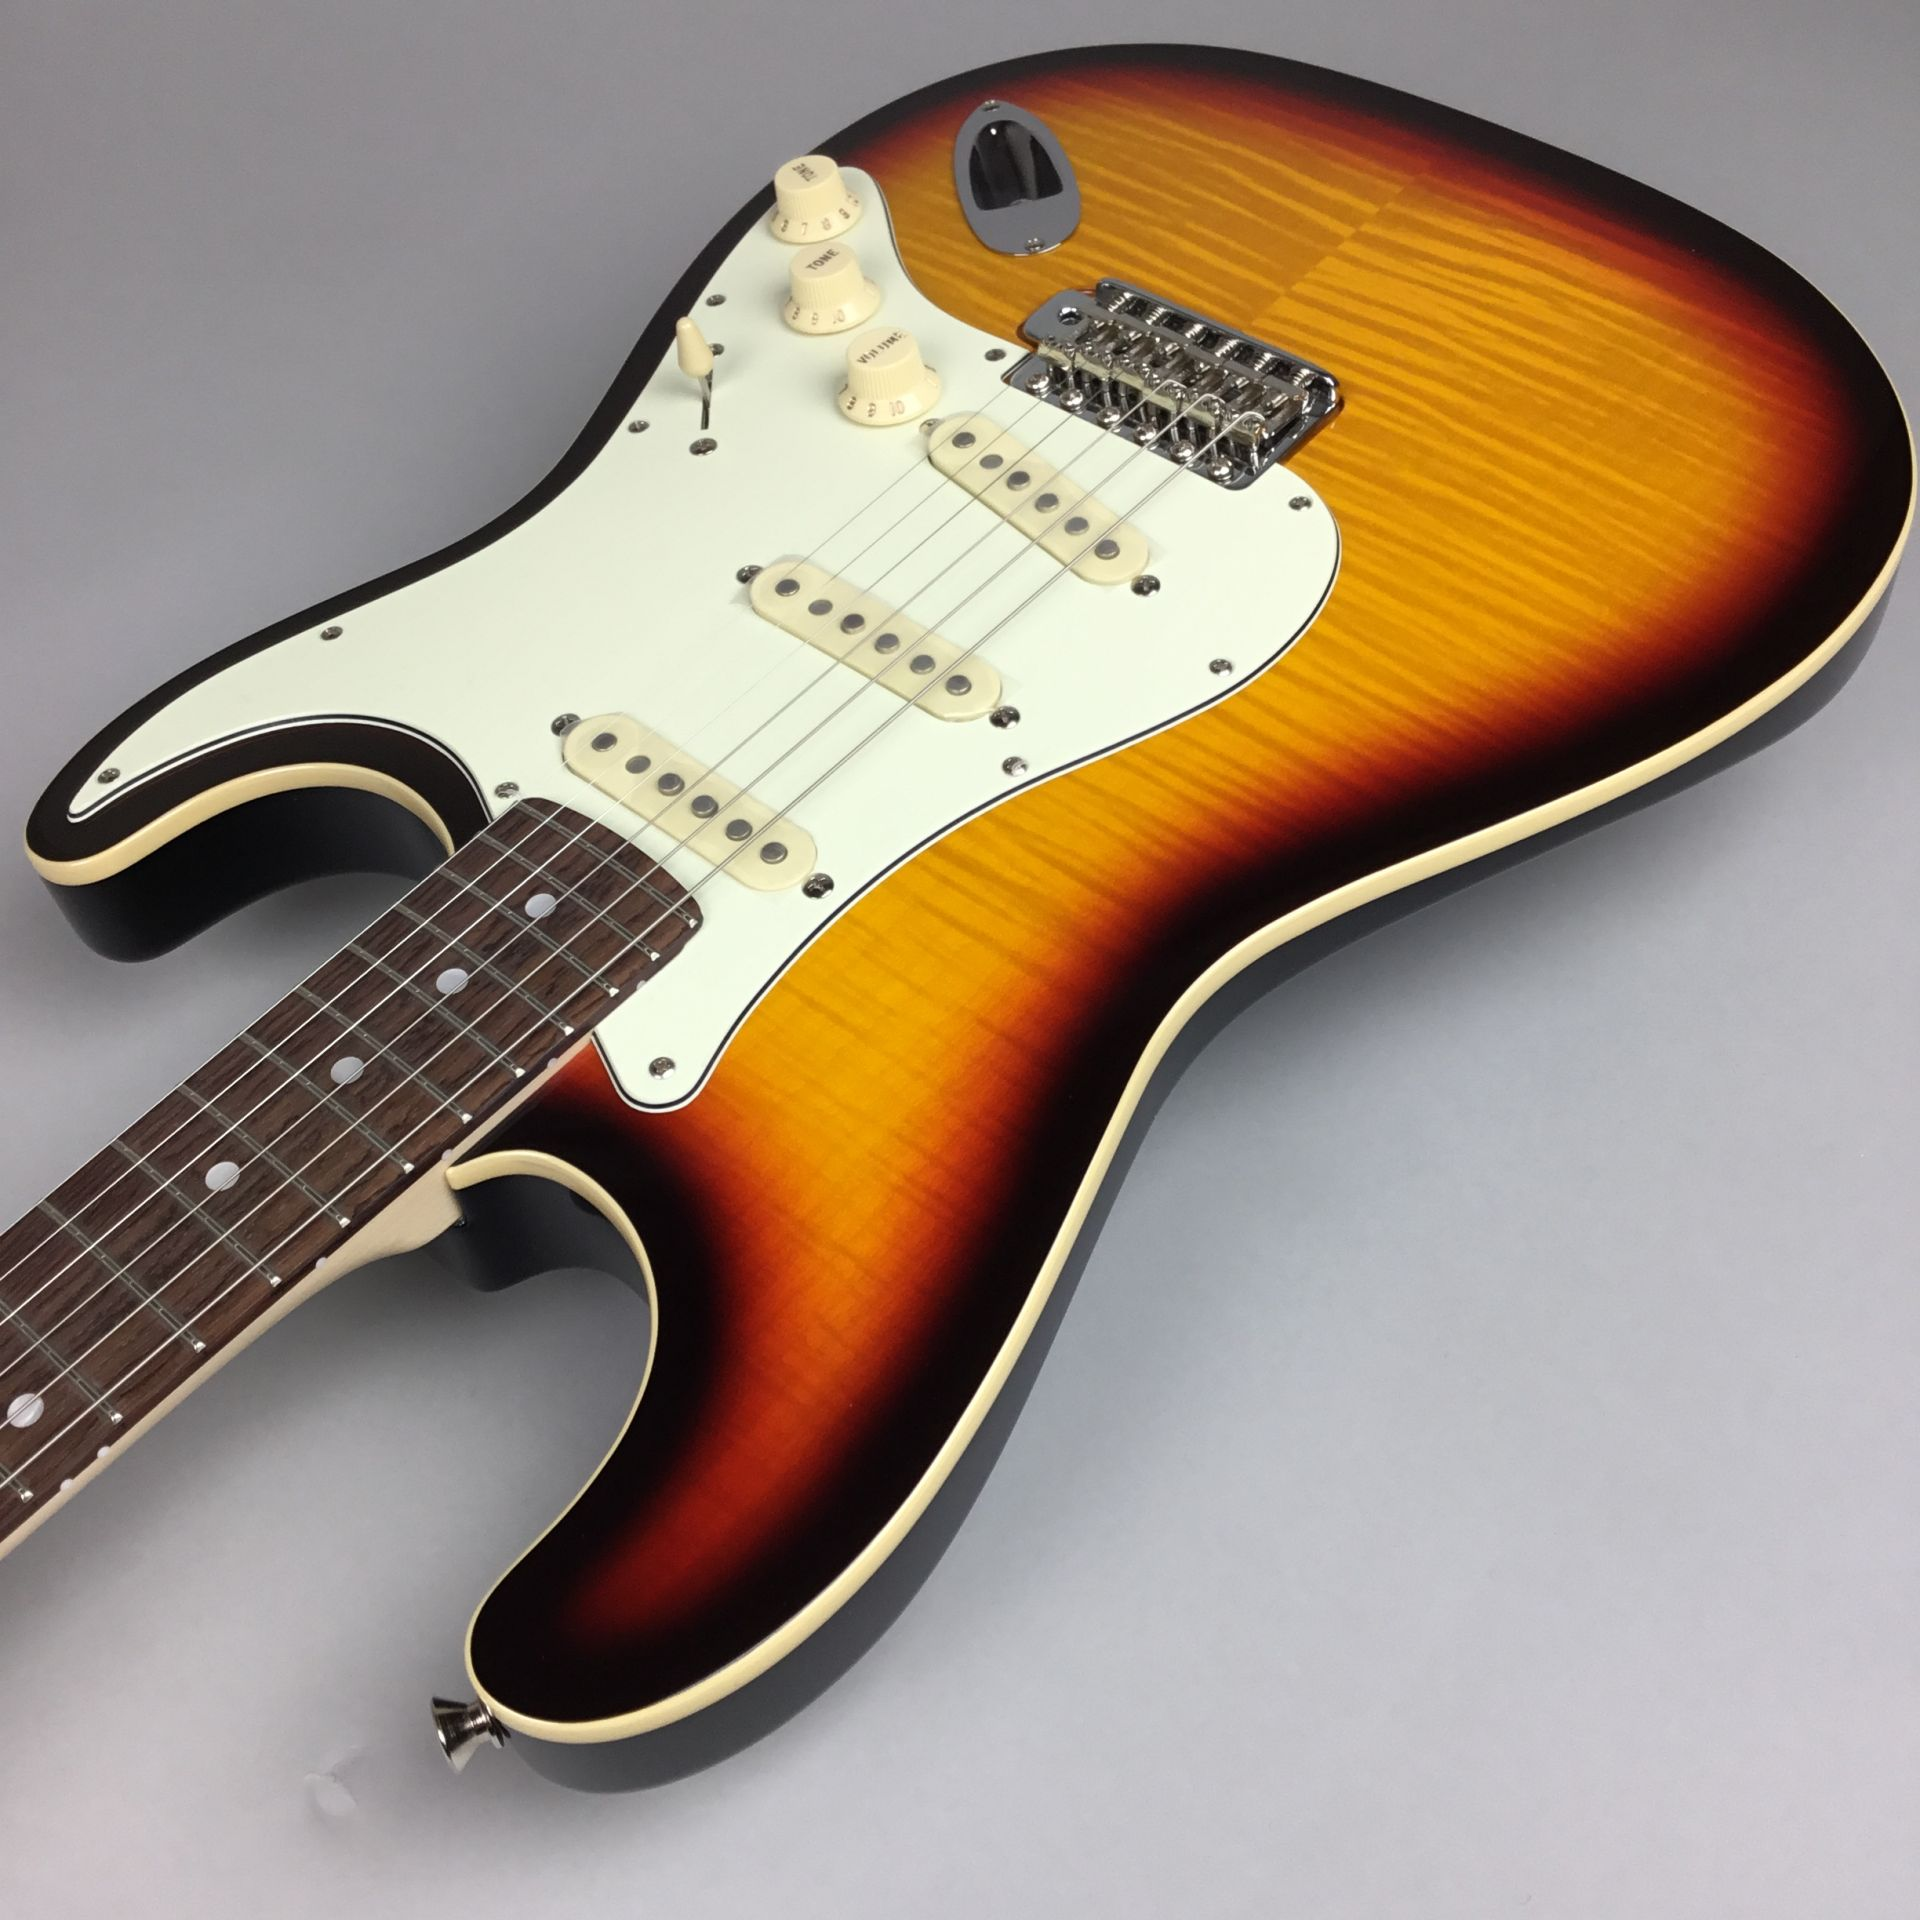 LIMITED EDITION AERODYNE CLASSIC STRATOCASTER® FLAME MAPLE TOPのケース・その他画像